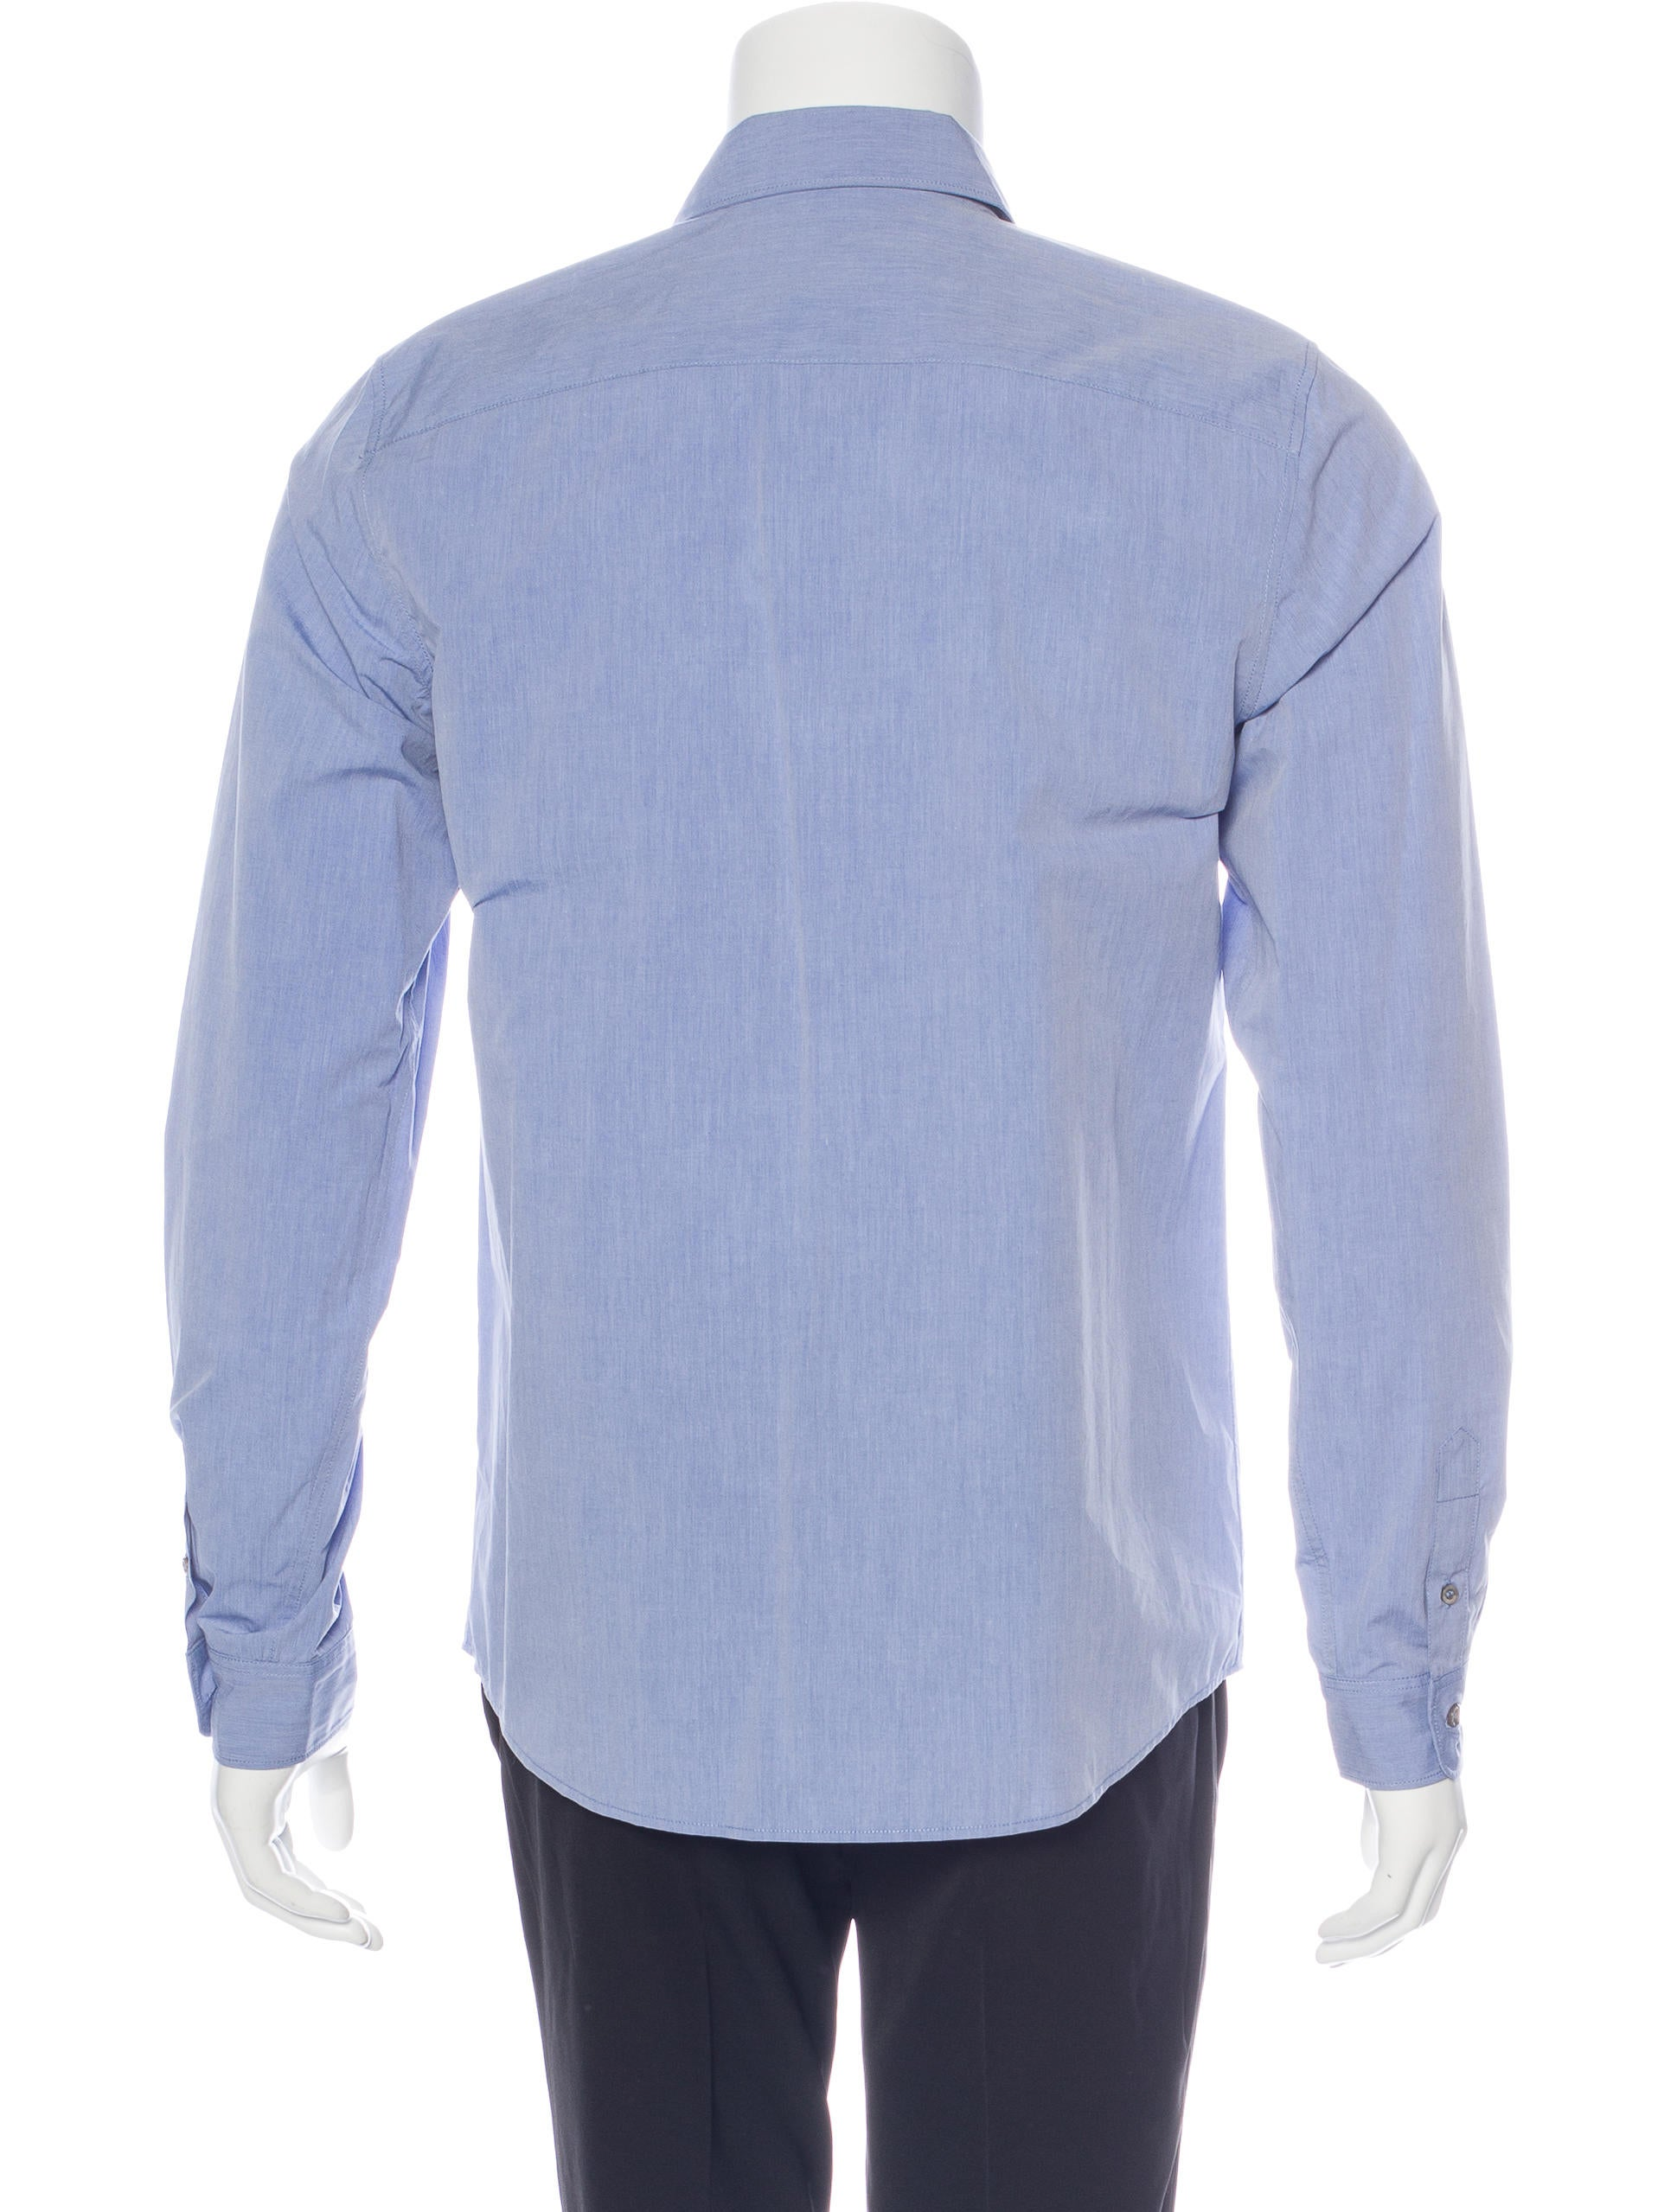 A p c woven button up shirt w tags clothing wa325443 Woven t shirt tags